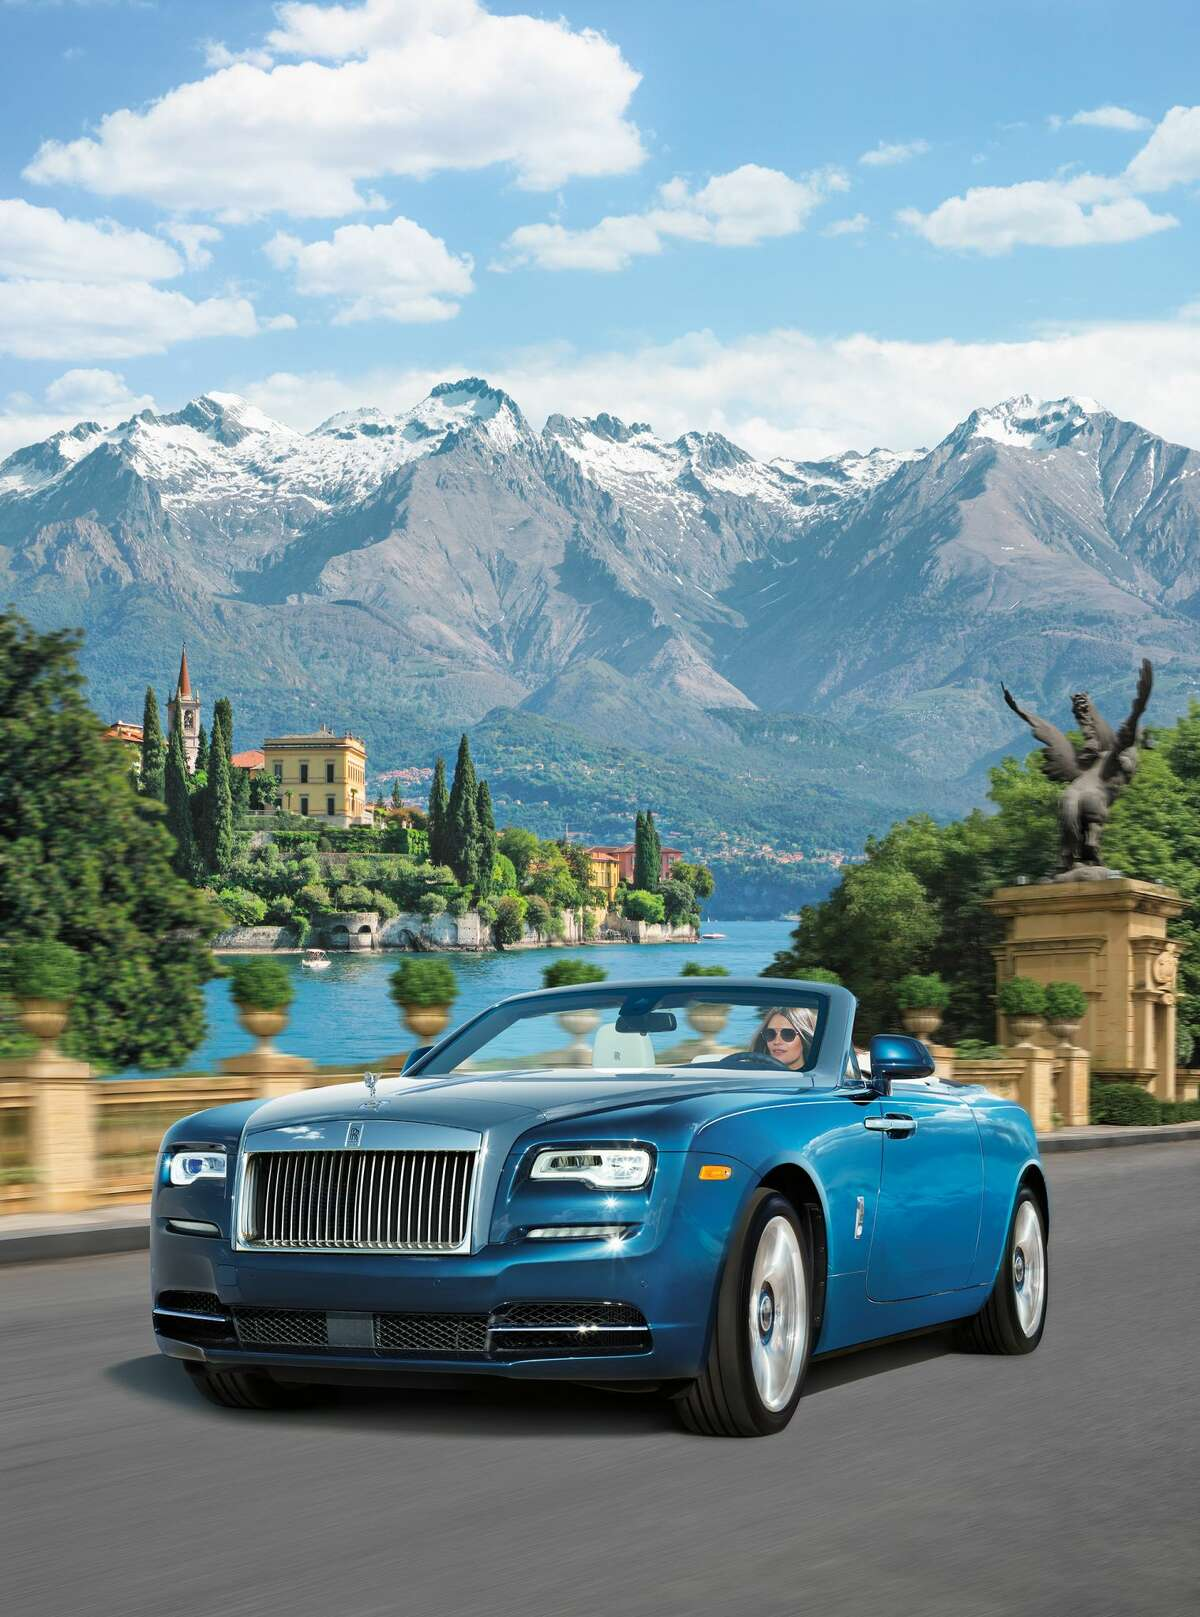 HIS CAR: Inspired by Lake Como, this V12-engined Rolls Royce Dawn boasts a crisp Selby Grey-and-black interior of hand-sewn leather, complemented by a brushed metal dashboard. PRICE TAG: $439,625